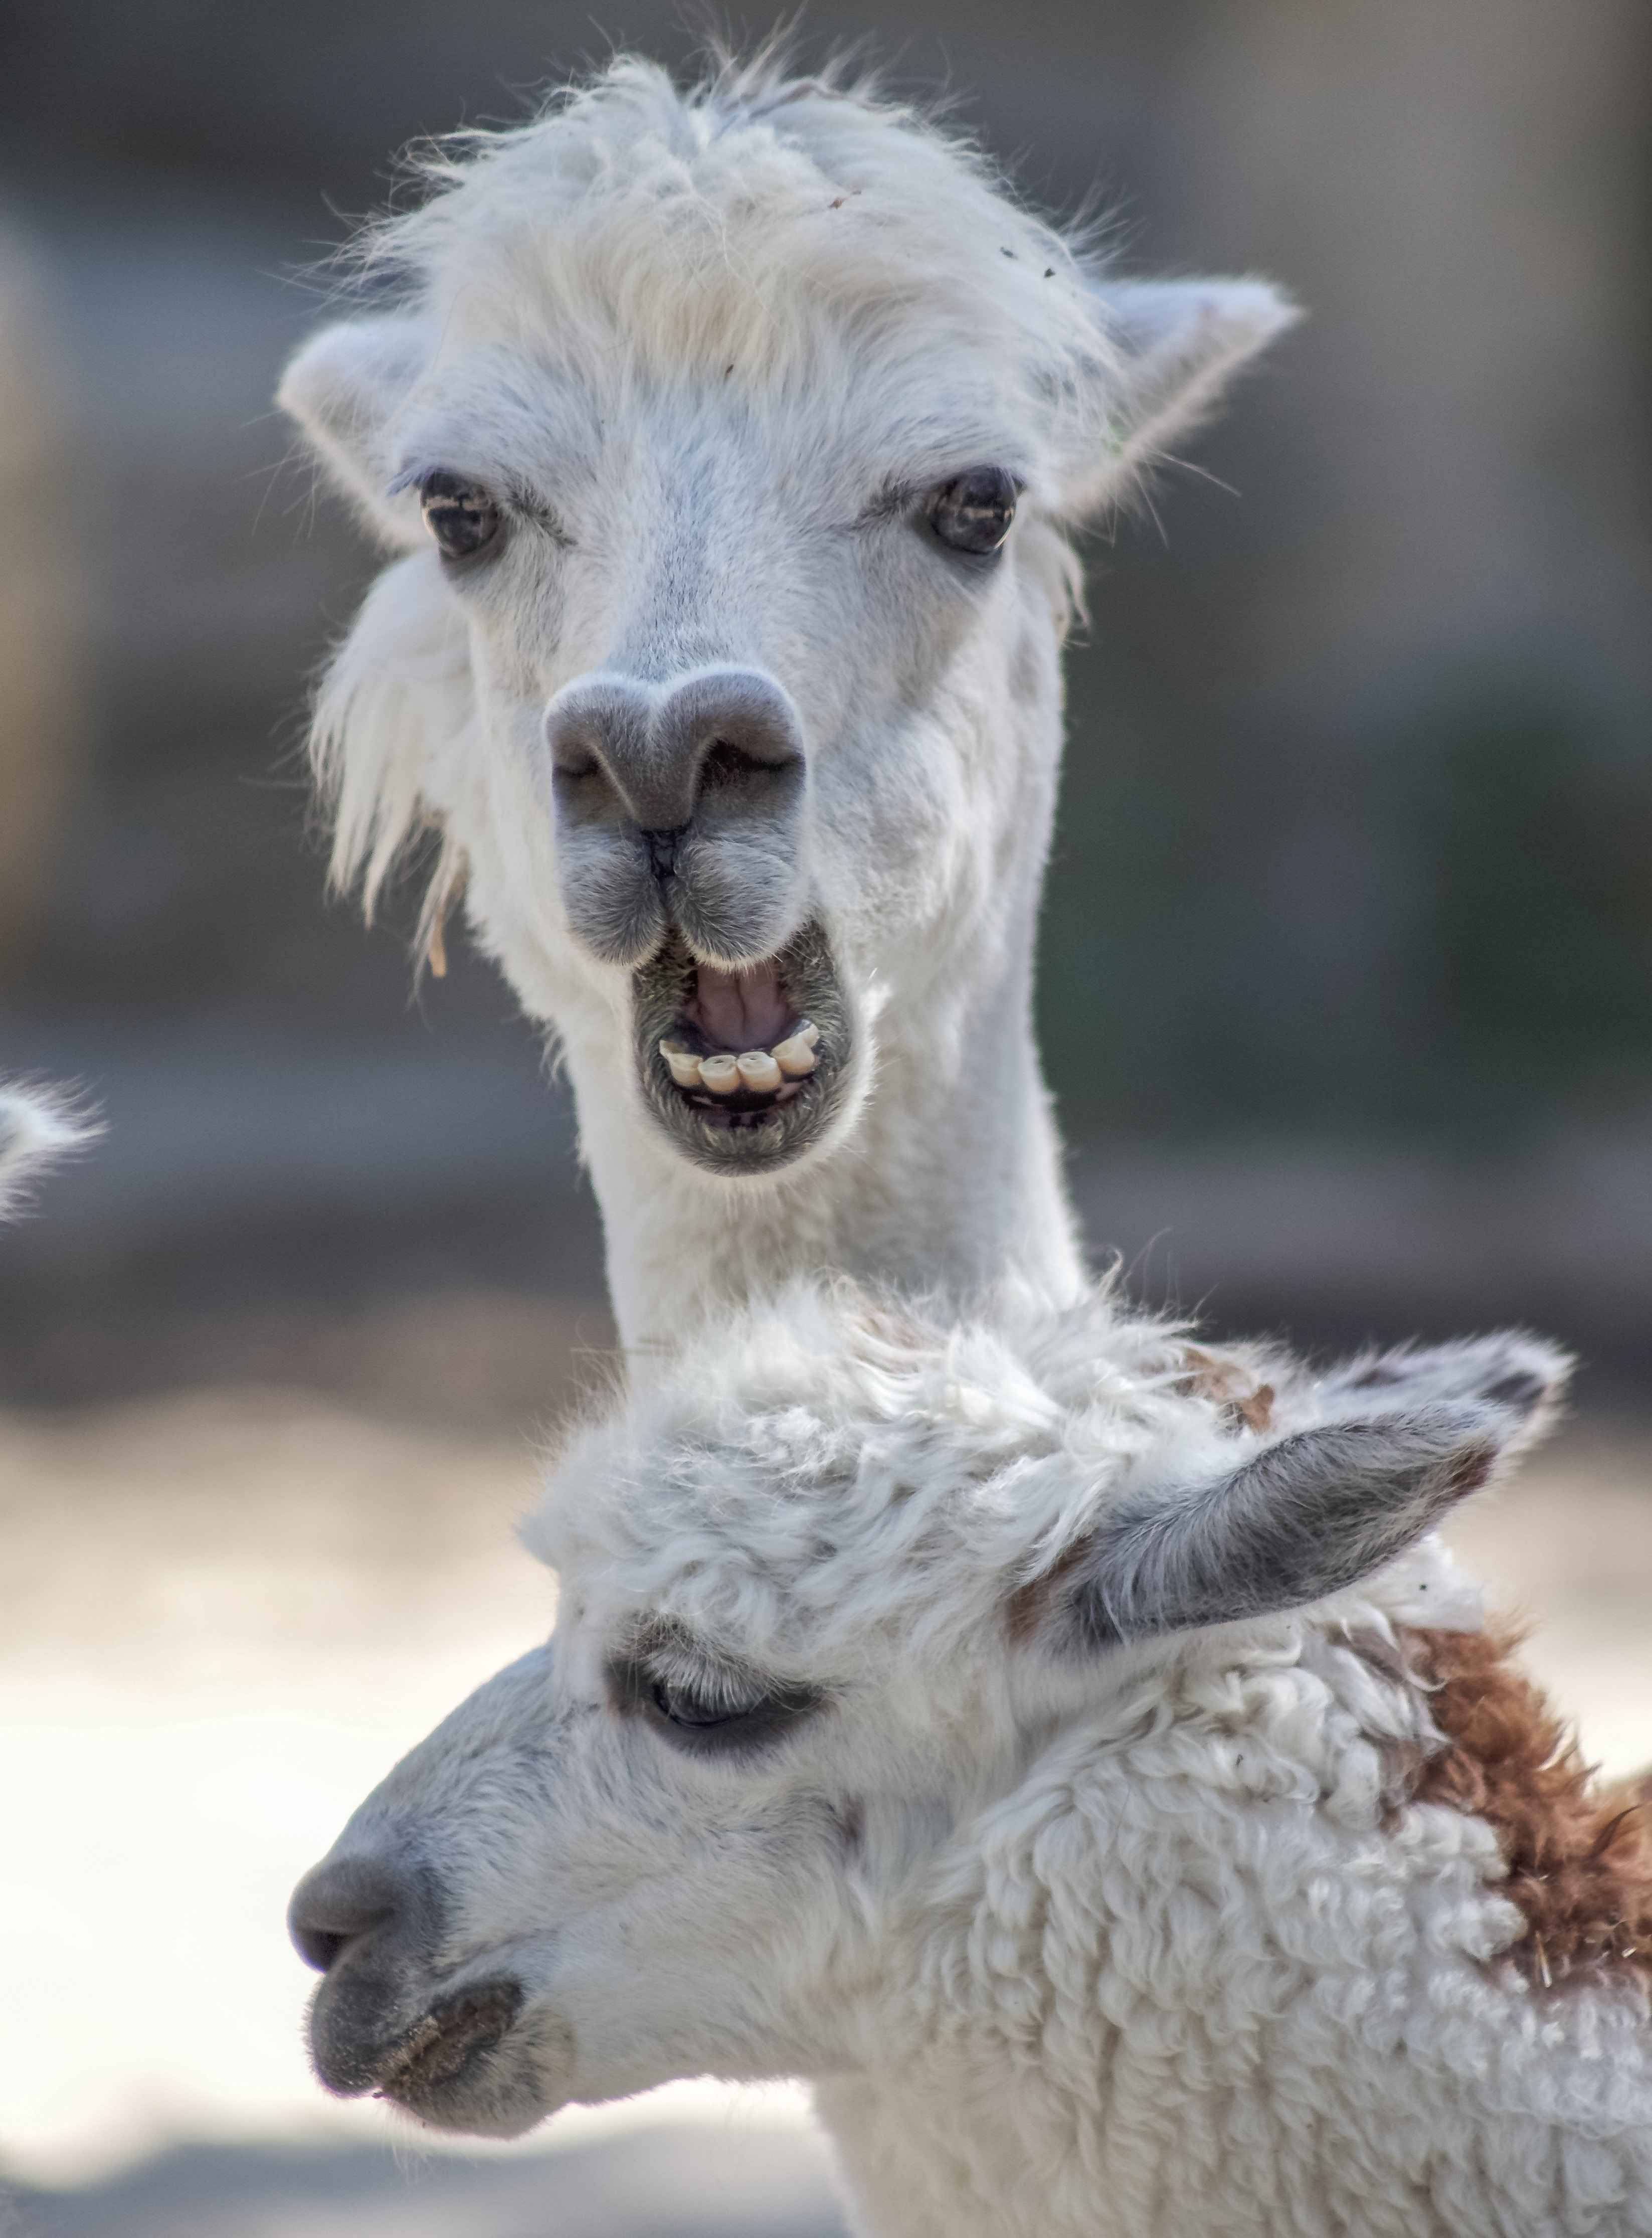 135175 download wallpaper Animals, Alpaca, Funny, Cool, Animal, Wildlife screensavers and pictures for free